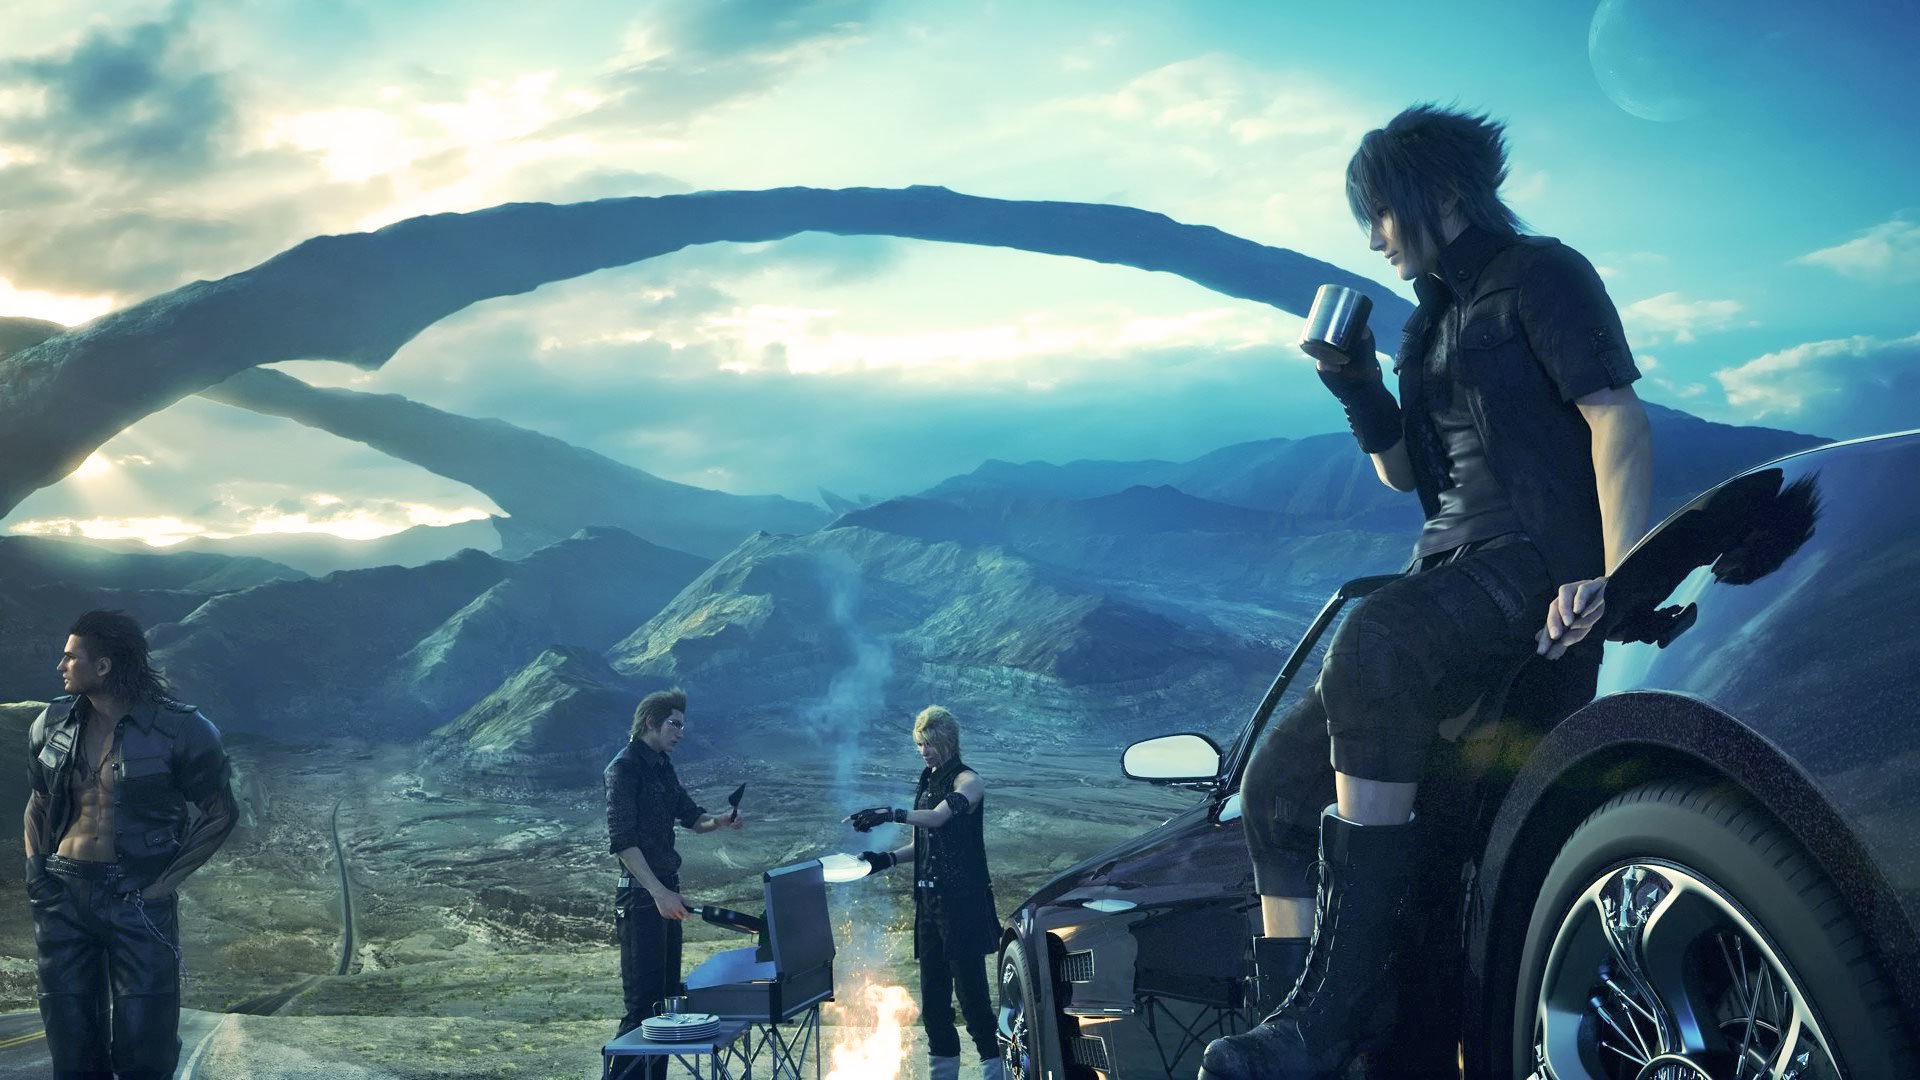 Square Enix reportedly pondering subscription service for all its games